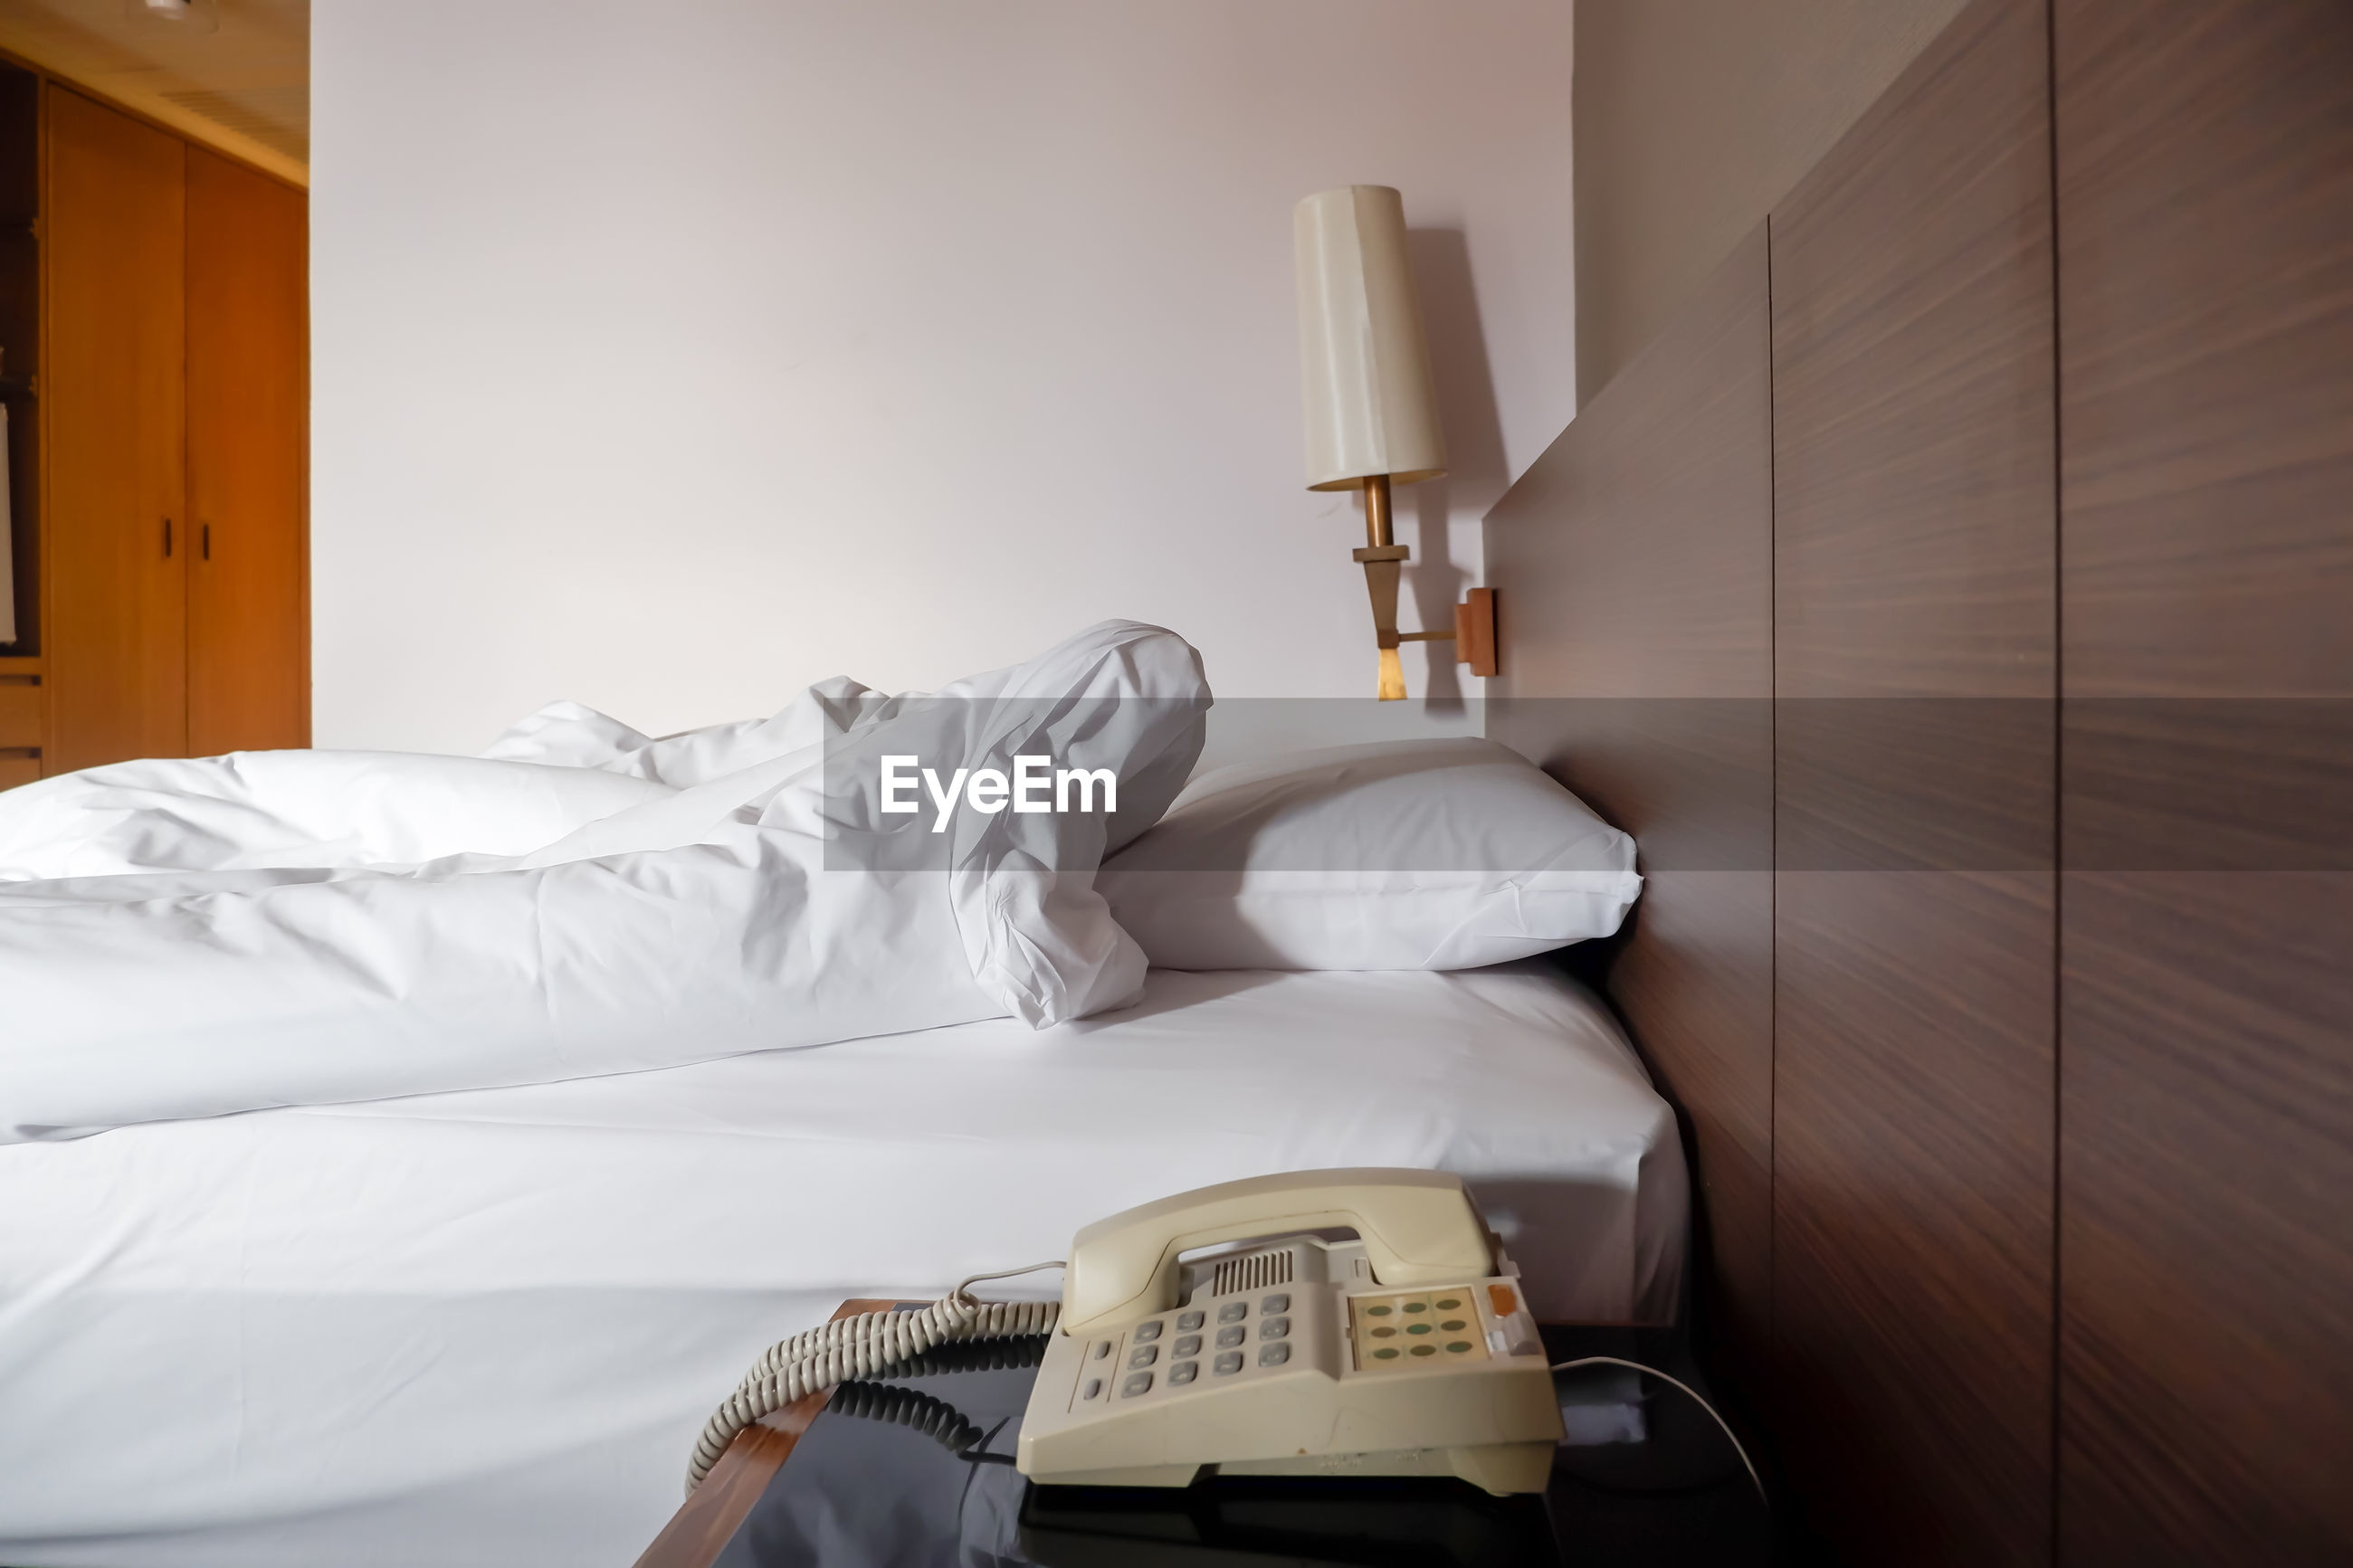 ELECTRIC LAMP ON BED AGAINST HOUSE